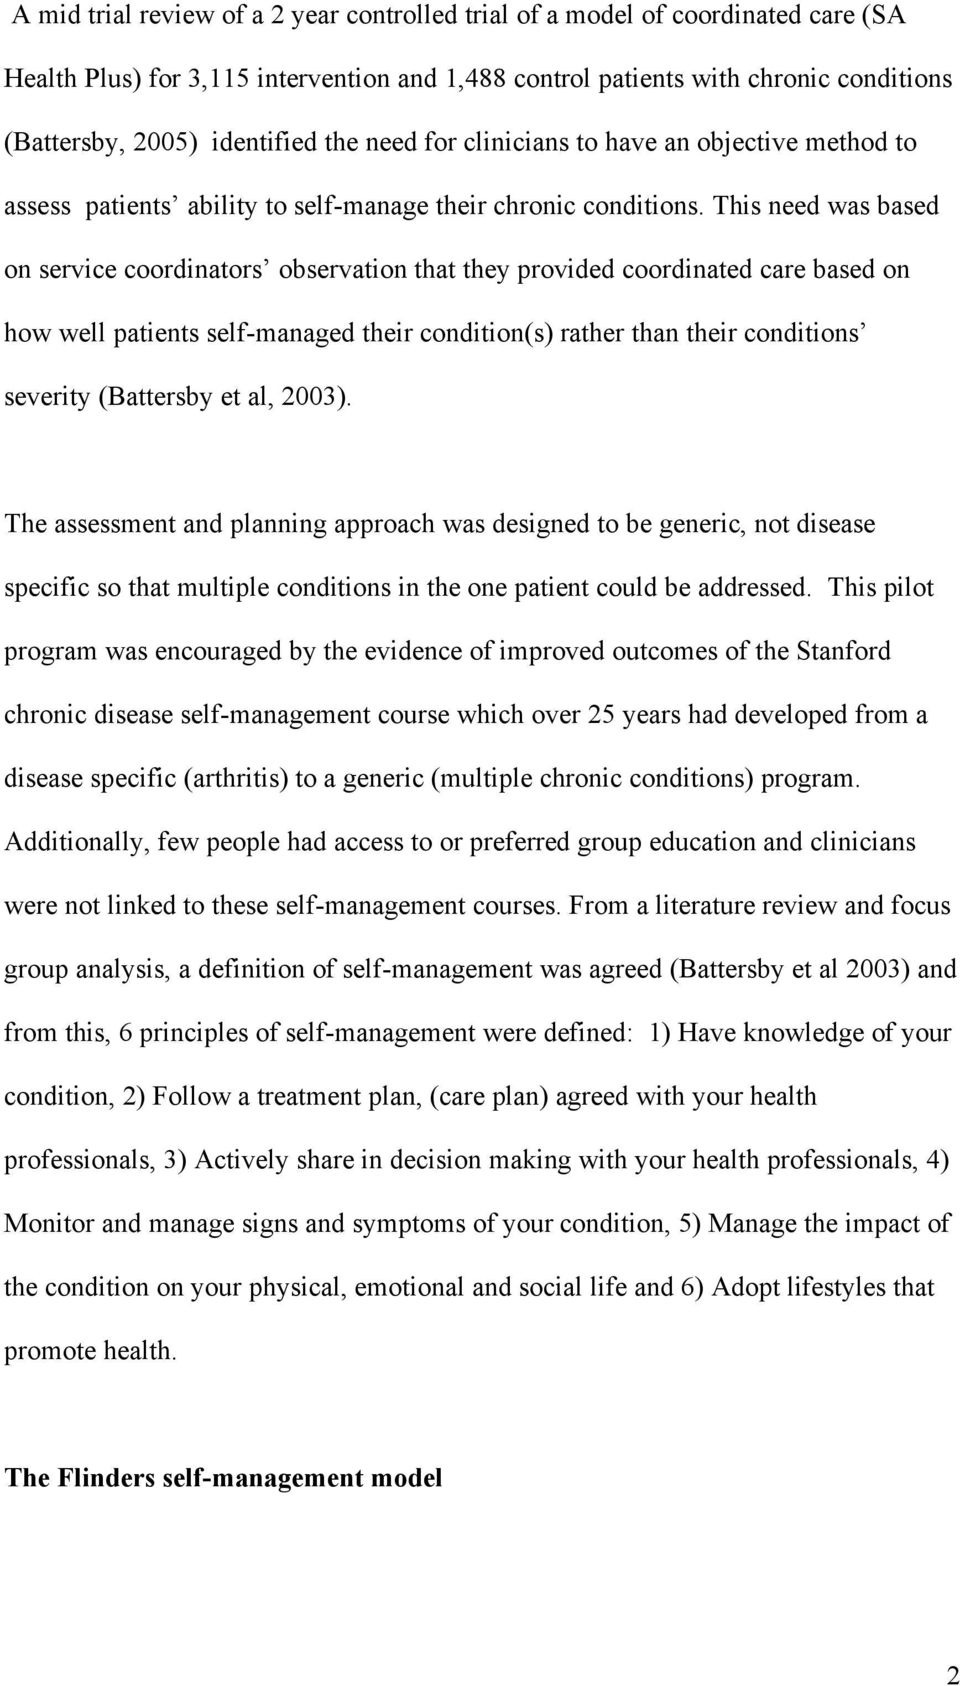 This need was based on service coordinators observation that they provided coordinated care based on how well patients self-managed their condition(s) rather than their conditions severity (Battersby